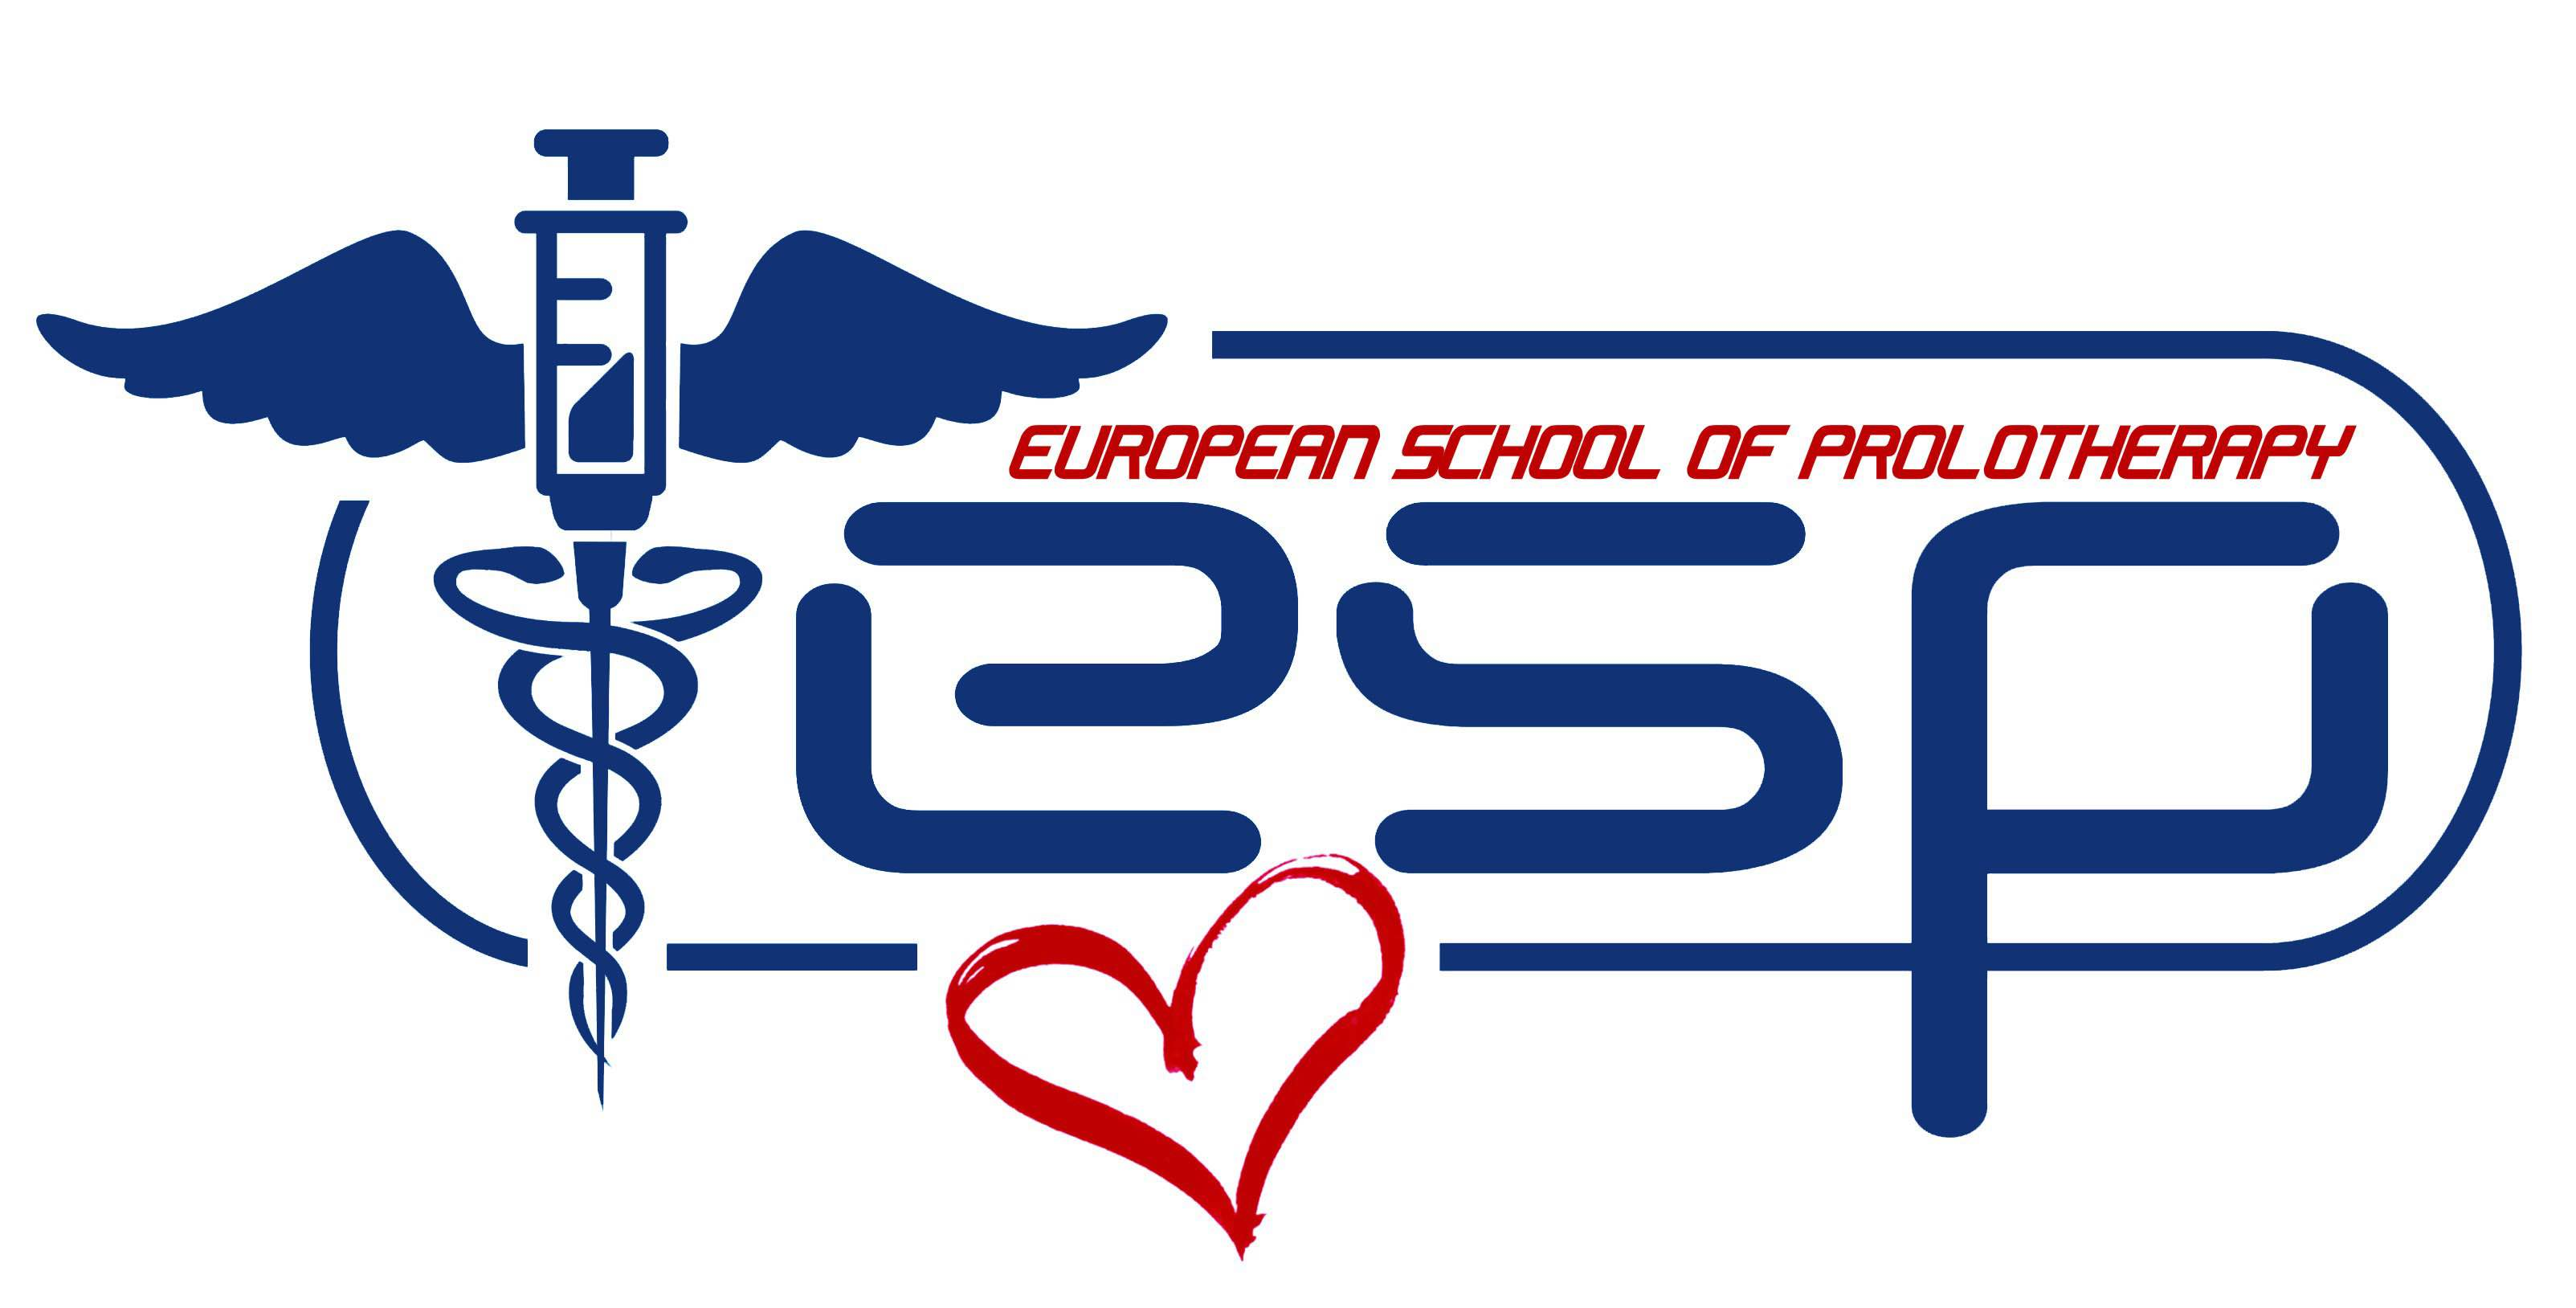 European School of Prolotherapy